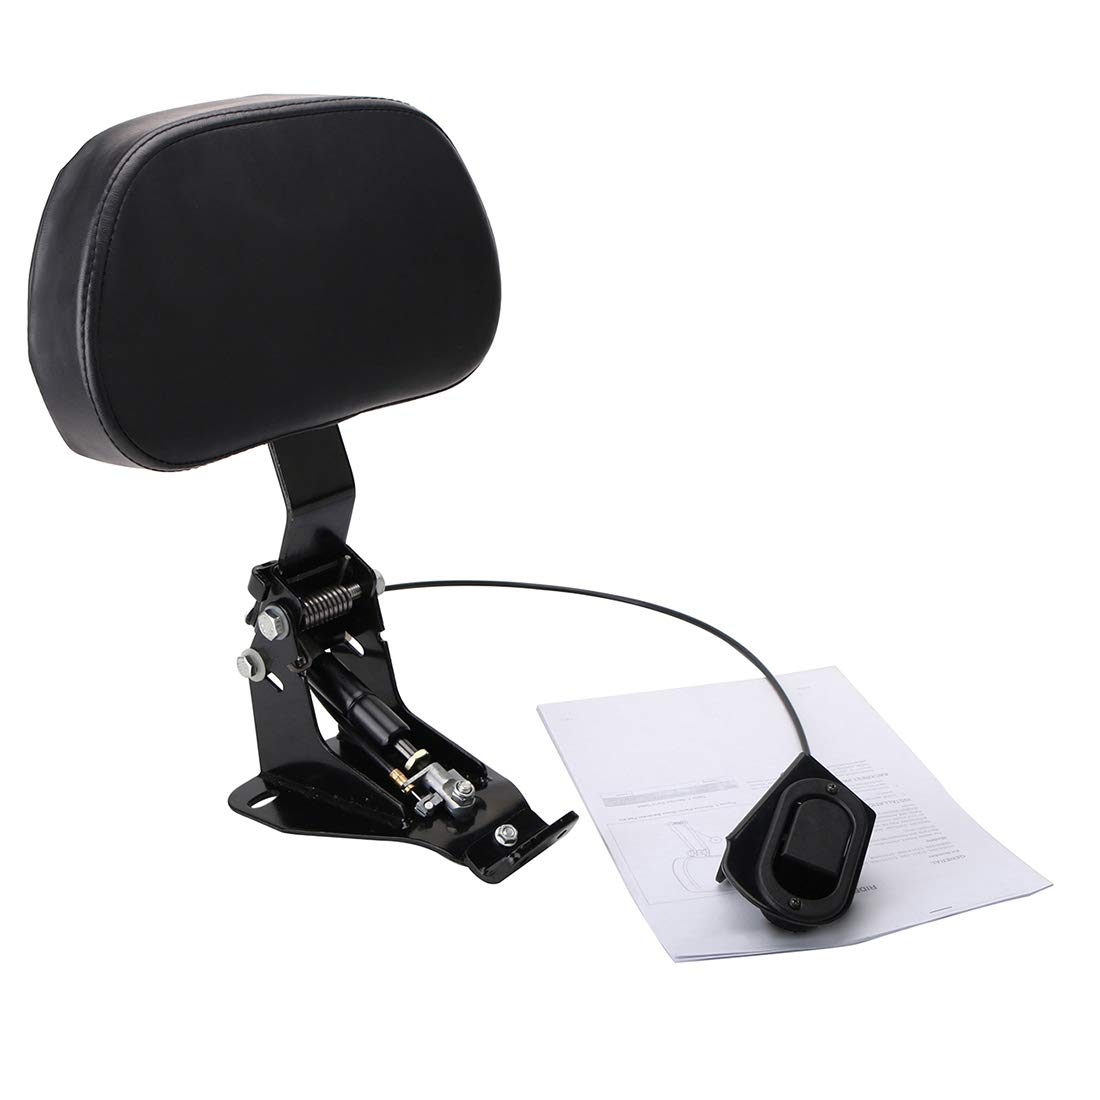 Motorcycle Detachable Adjustable Passenger Driver Rider Backrest Sissy Bar for Harley Electra Glide Street Glide Ultra CVO FLHR FLHX FLTRX 2009-2018